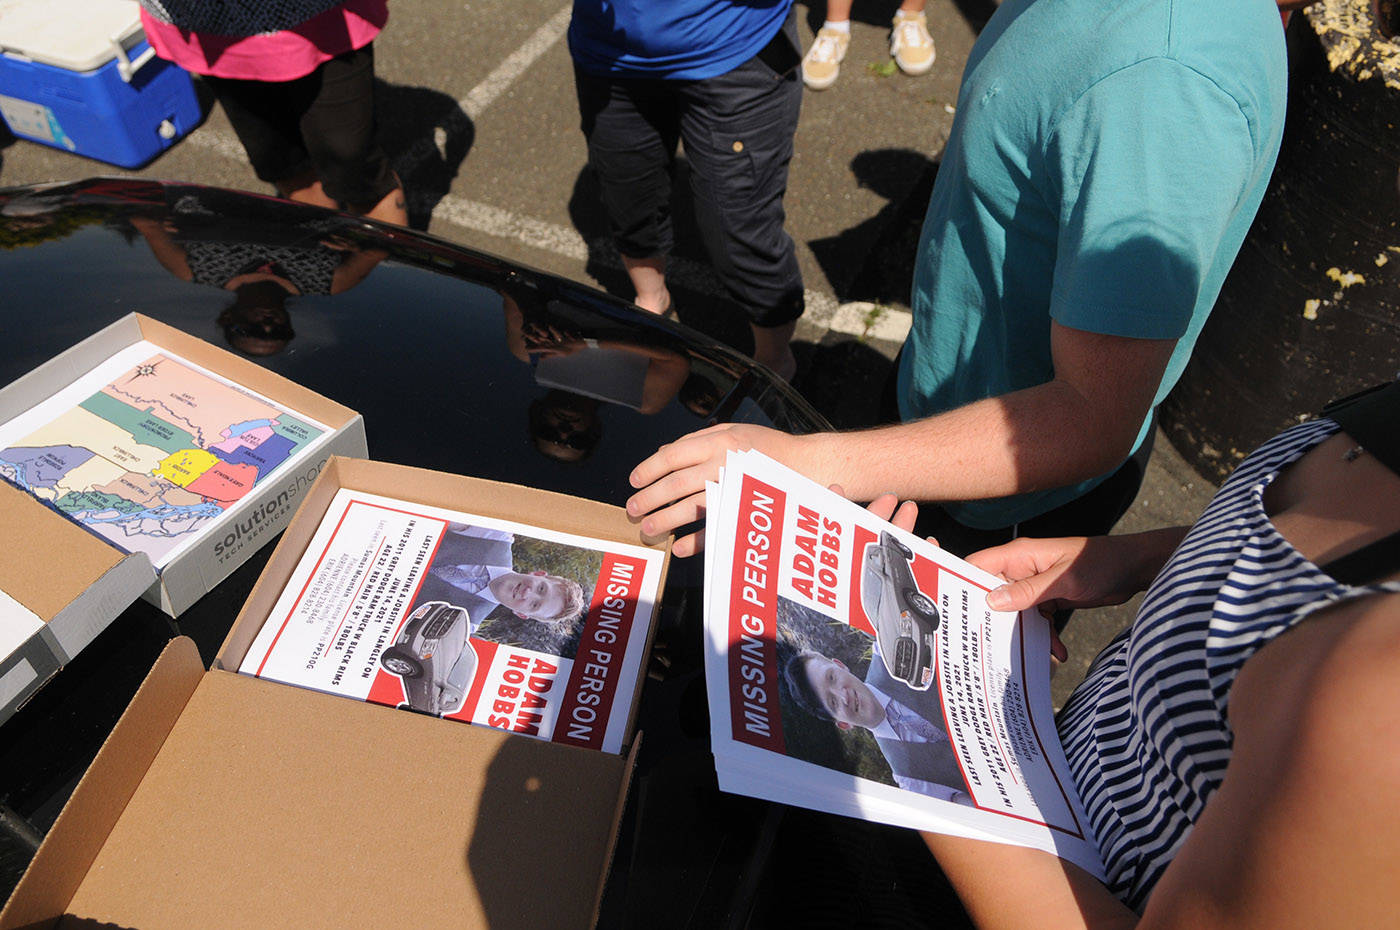 Family and friends of missing Abbotsford man, Adam Hobbs, gather to distribute posters in Chilliwack on Thursday, June 17, 2021. (Jenna Hauck/ Chilliwack Progress)